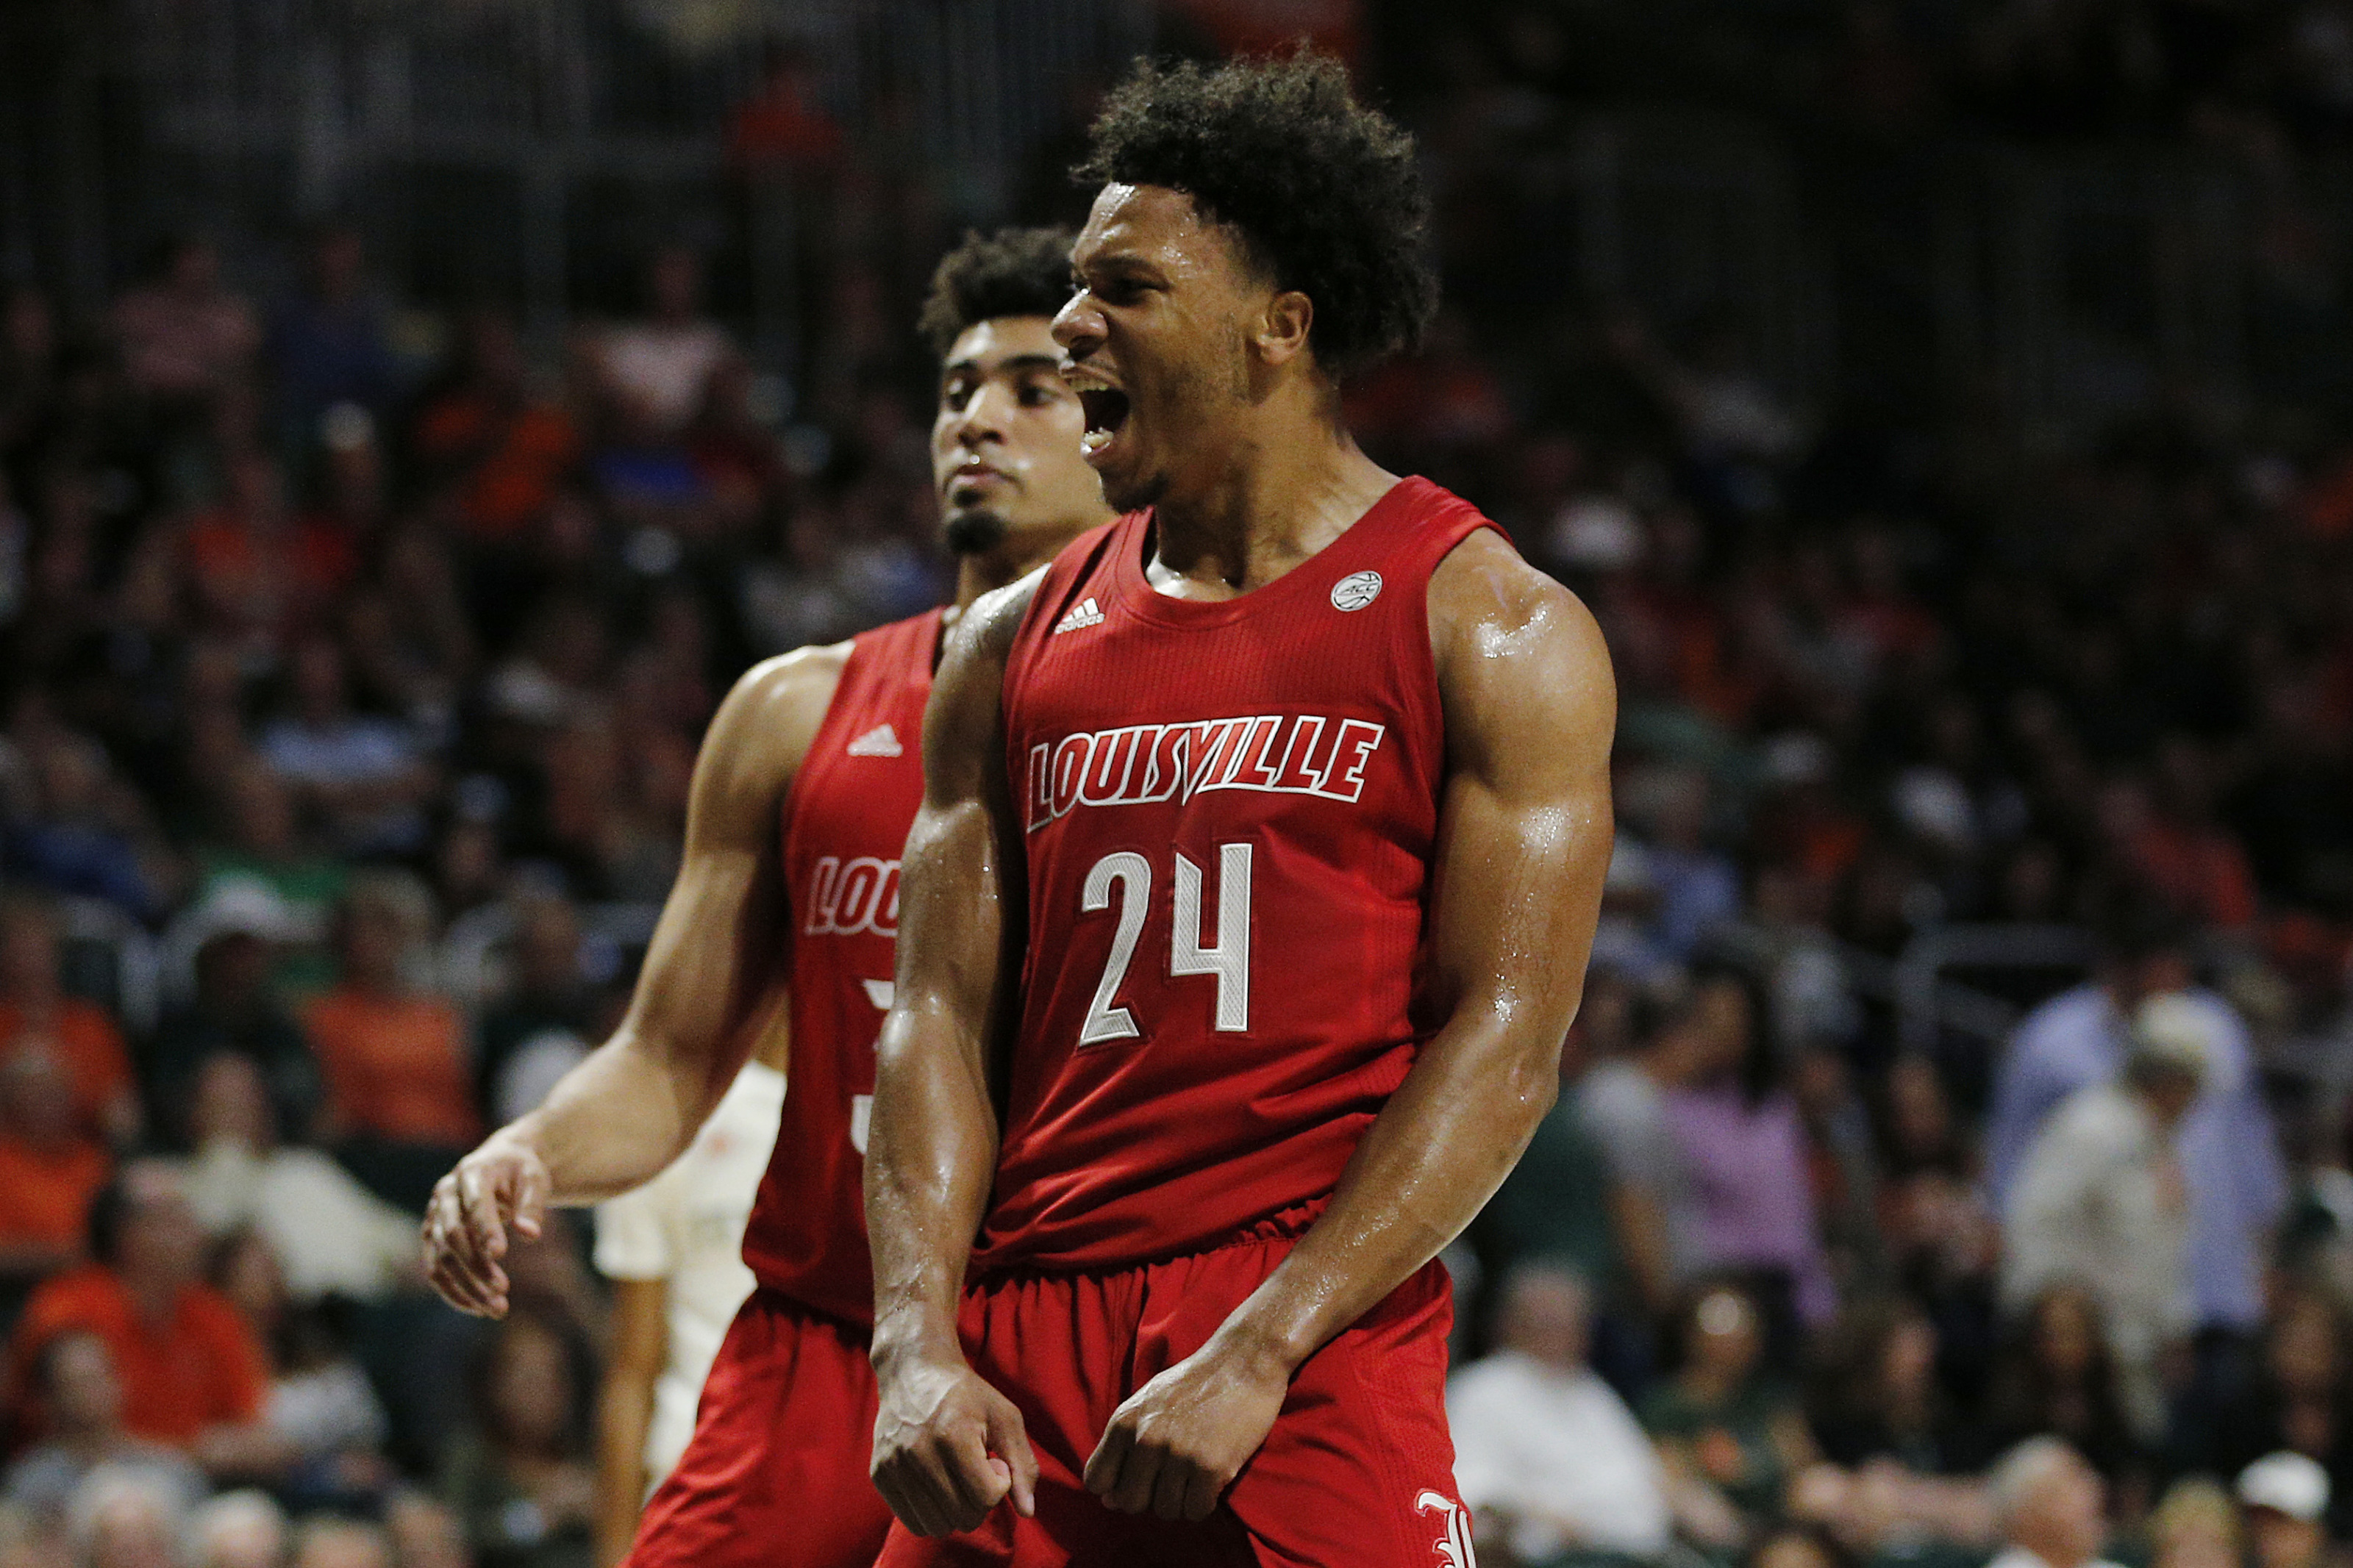 Simulation places Louisville basketball in theoretical national title game